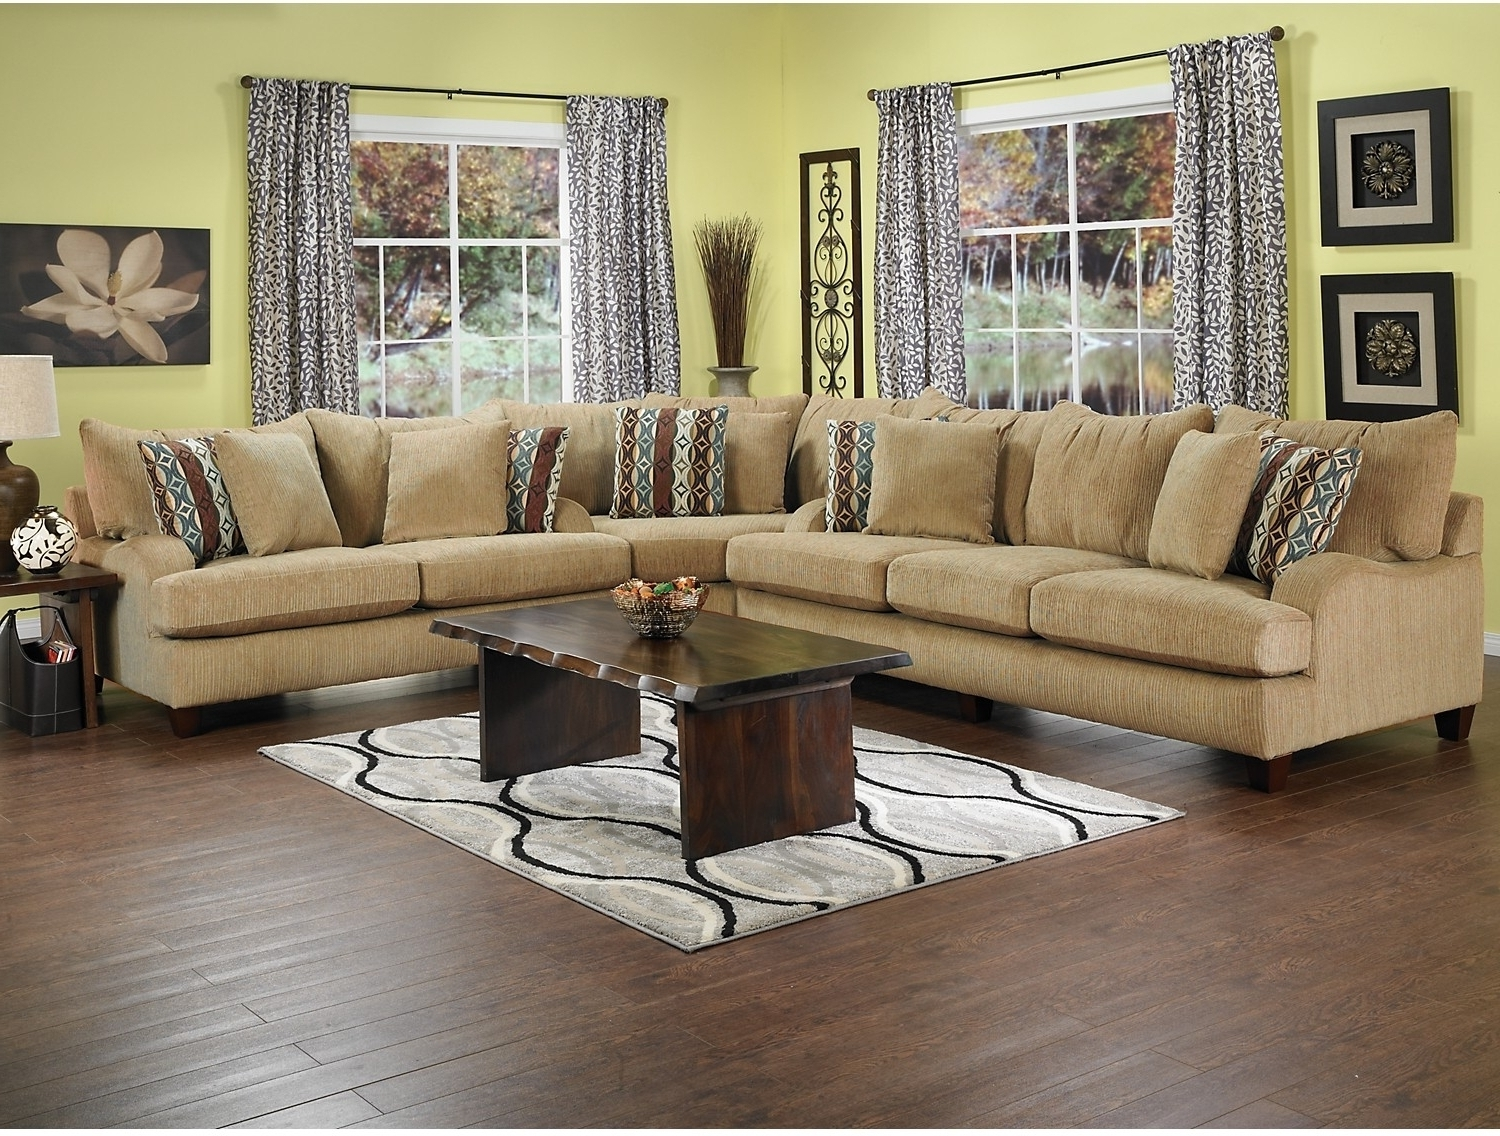 Well Known Collection The Brick Sectional Couches – Buildsimplehome Throughout Sectional Sofas At Brick (View 4 of 20)